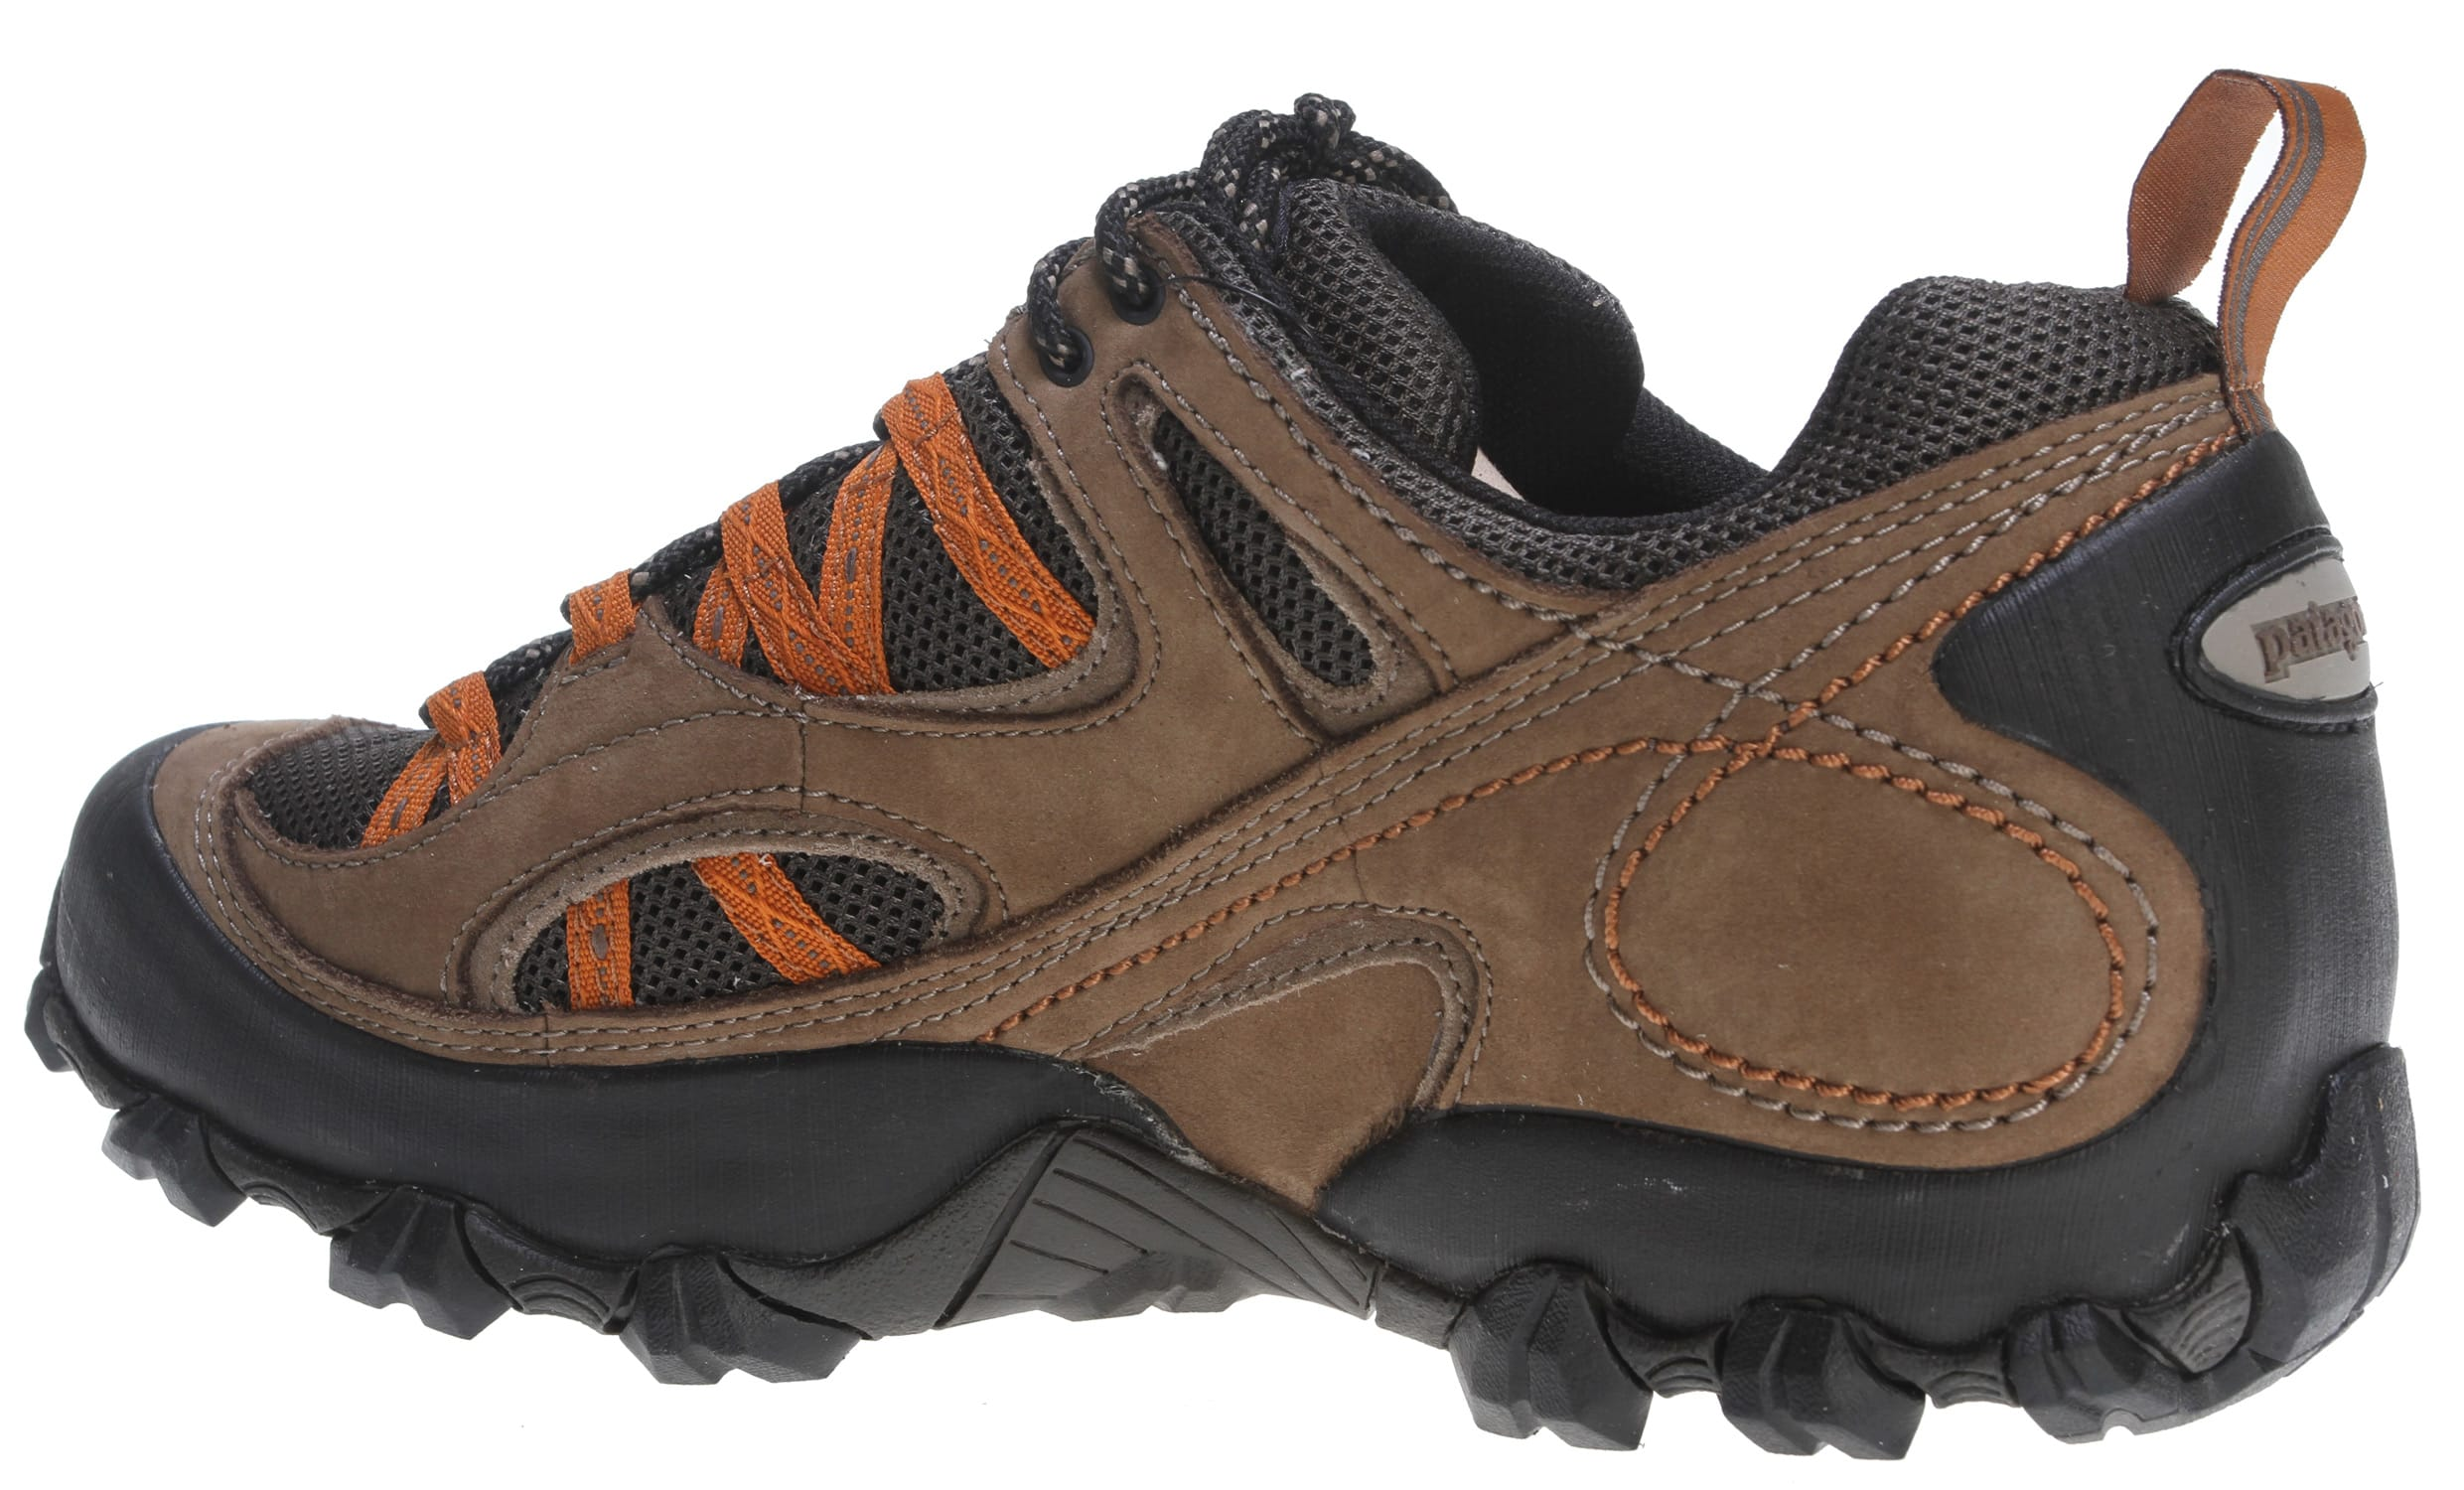 3890f923aed Patagonia Drifter A C Hiking Shoes - thumbnail 3